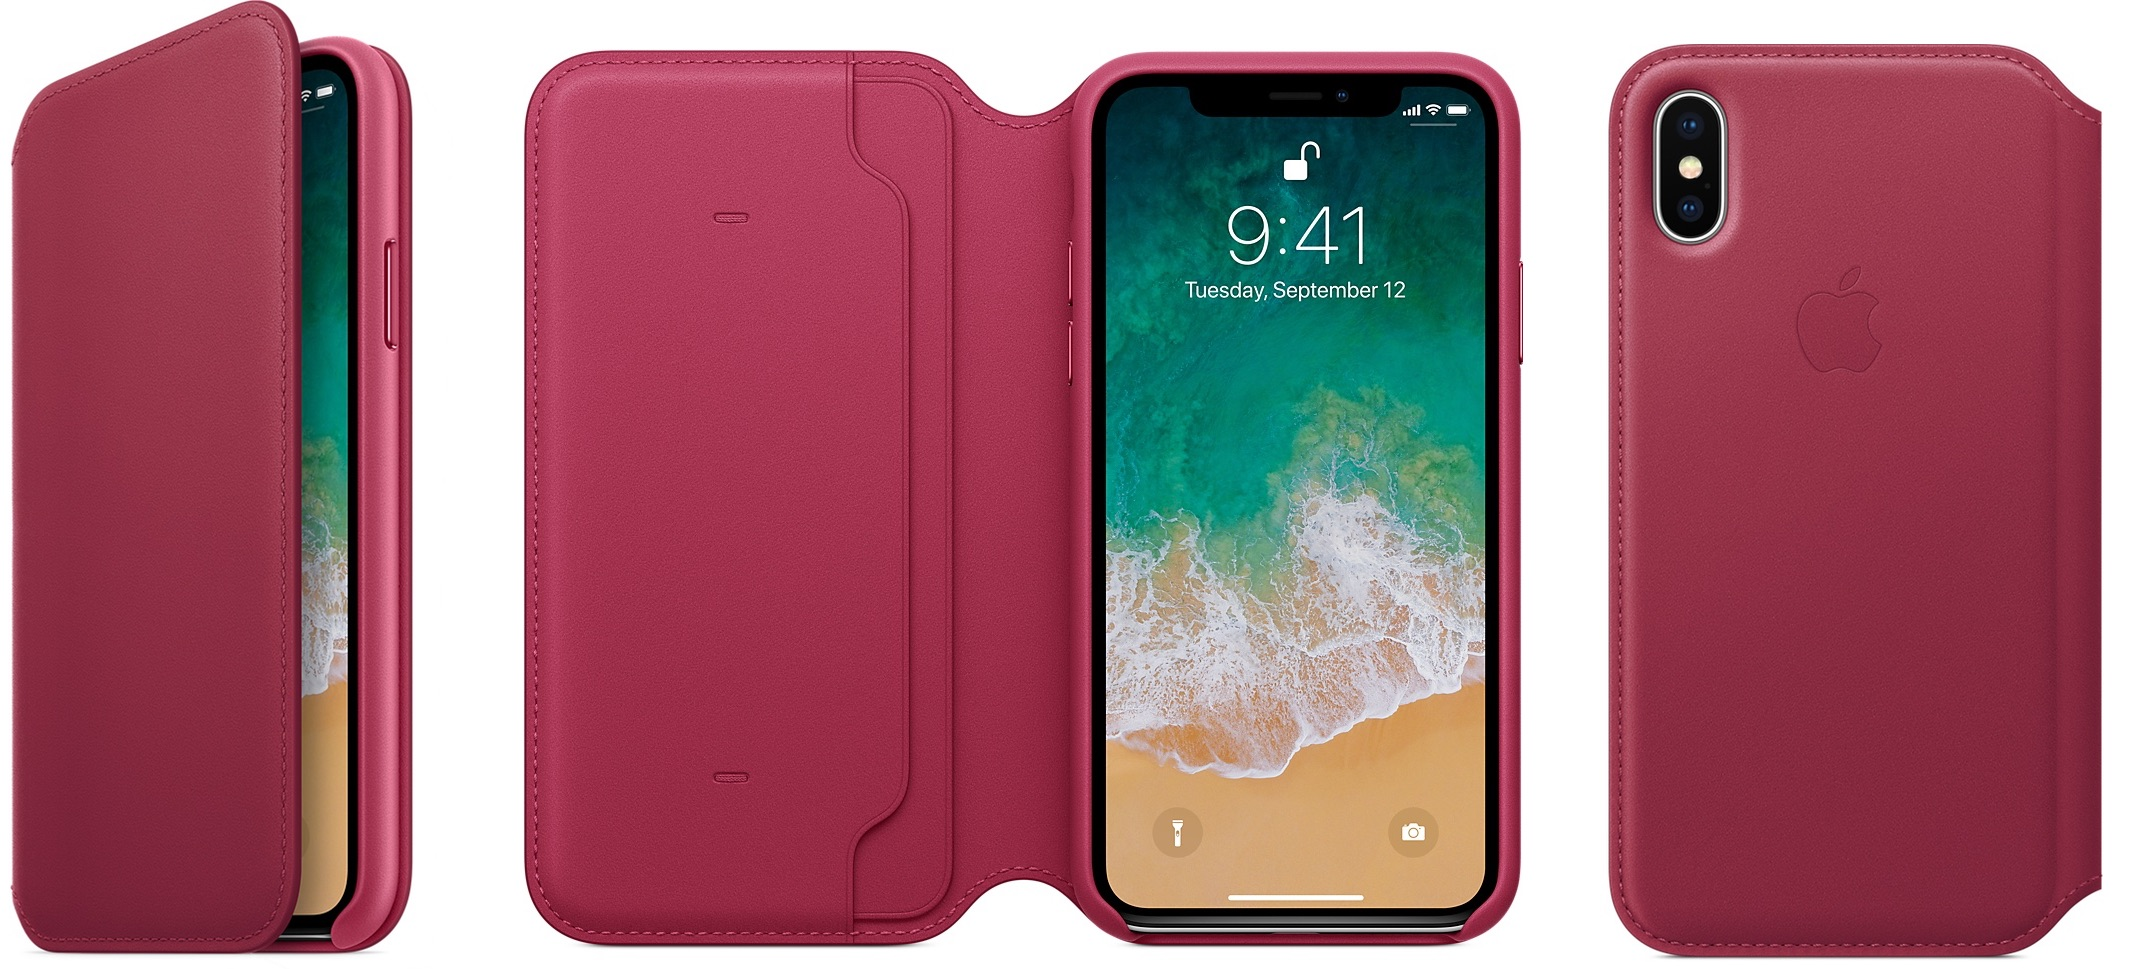 meet d65e7 fb296 Who's willing to shell out $99 for Apple's folio case to go with ...